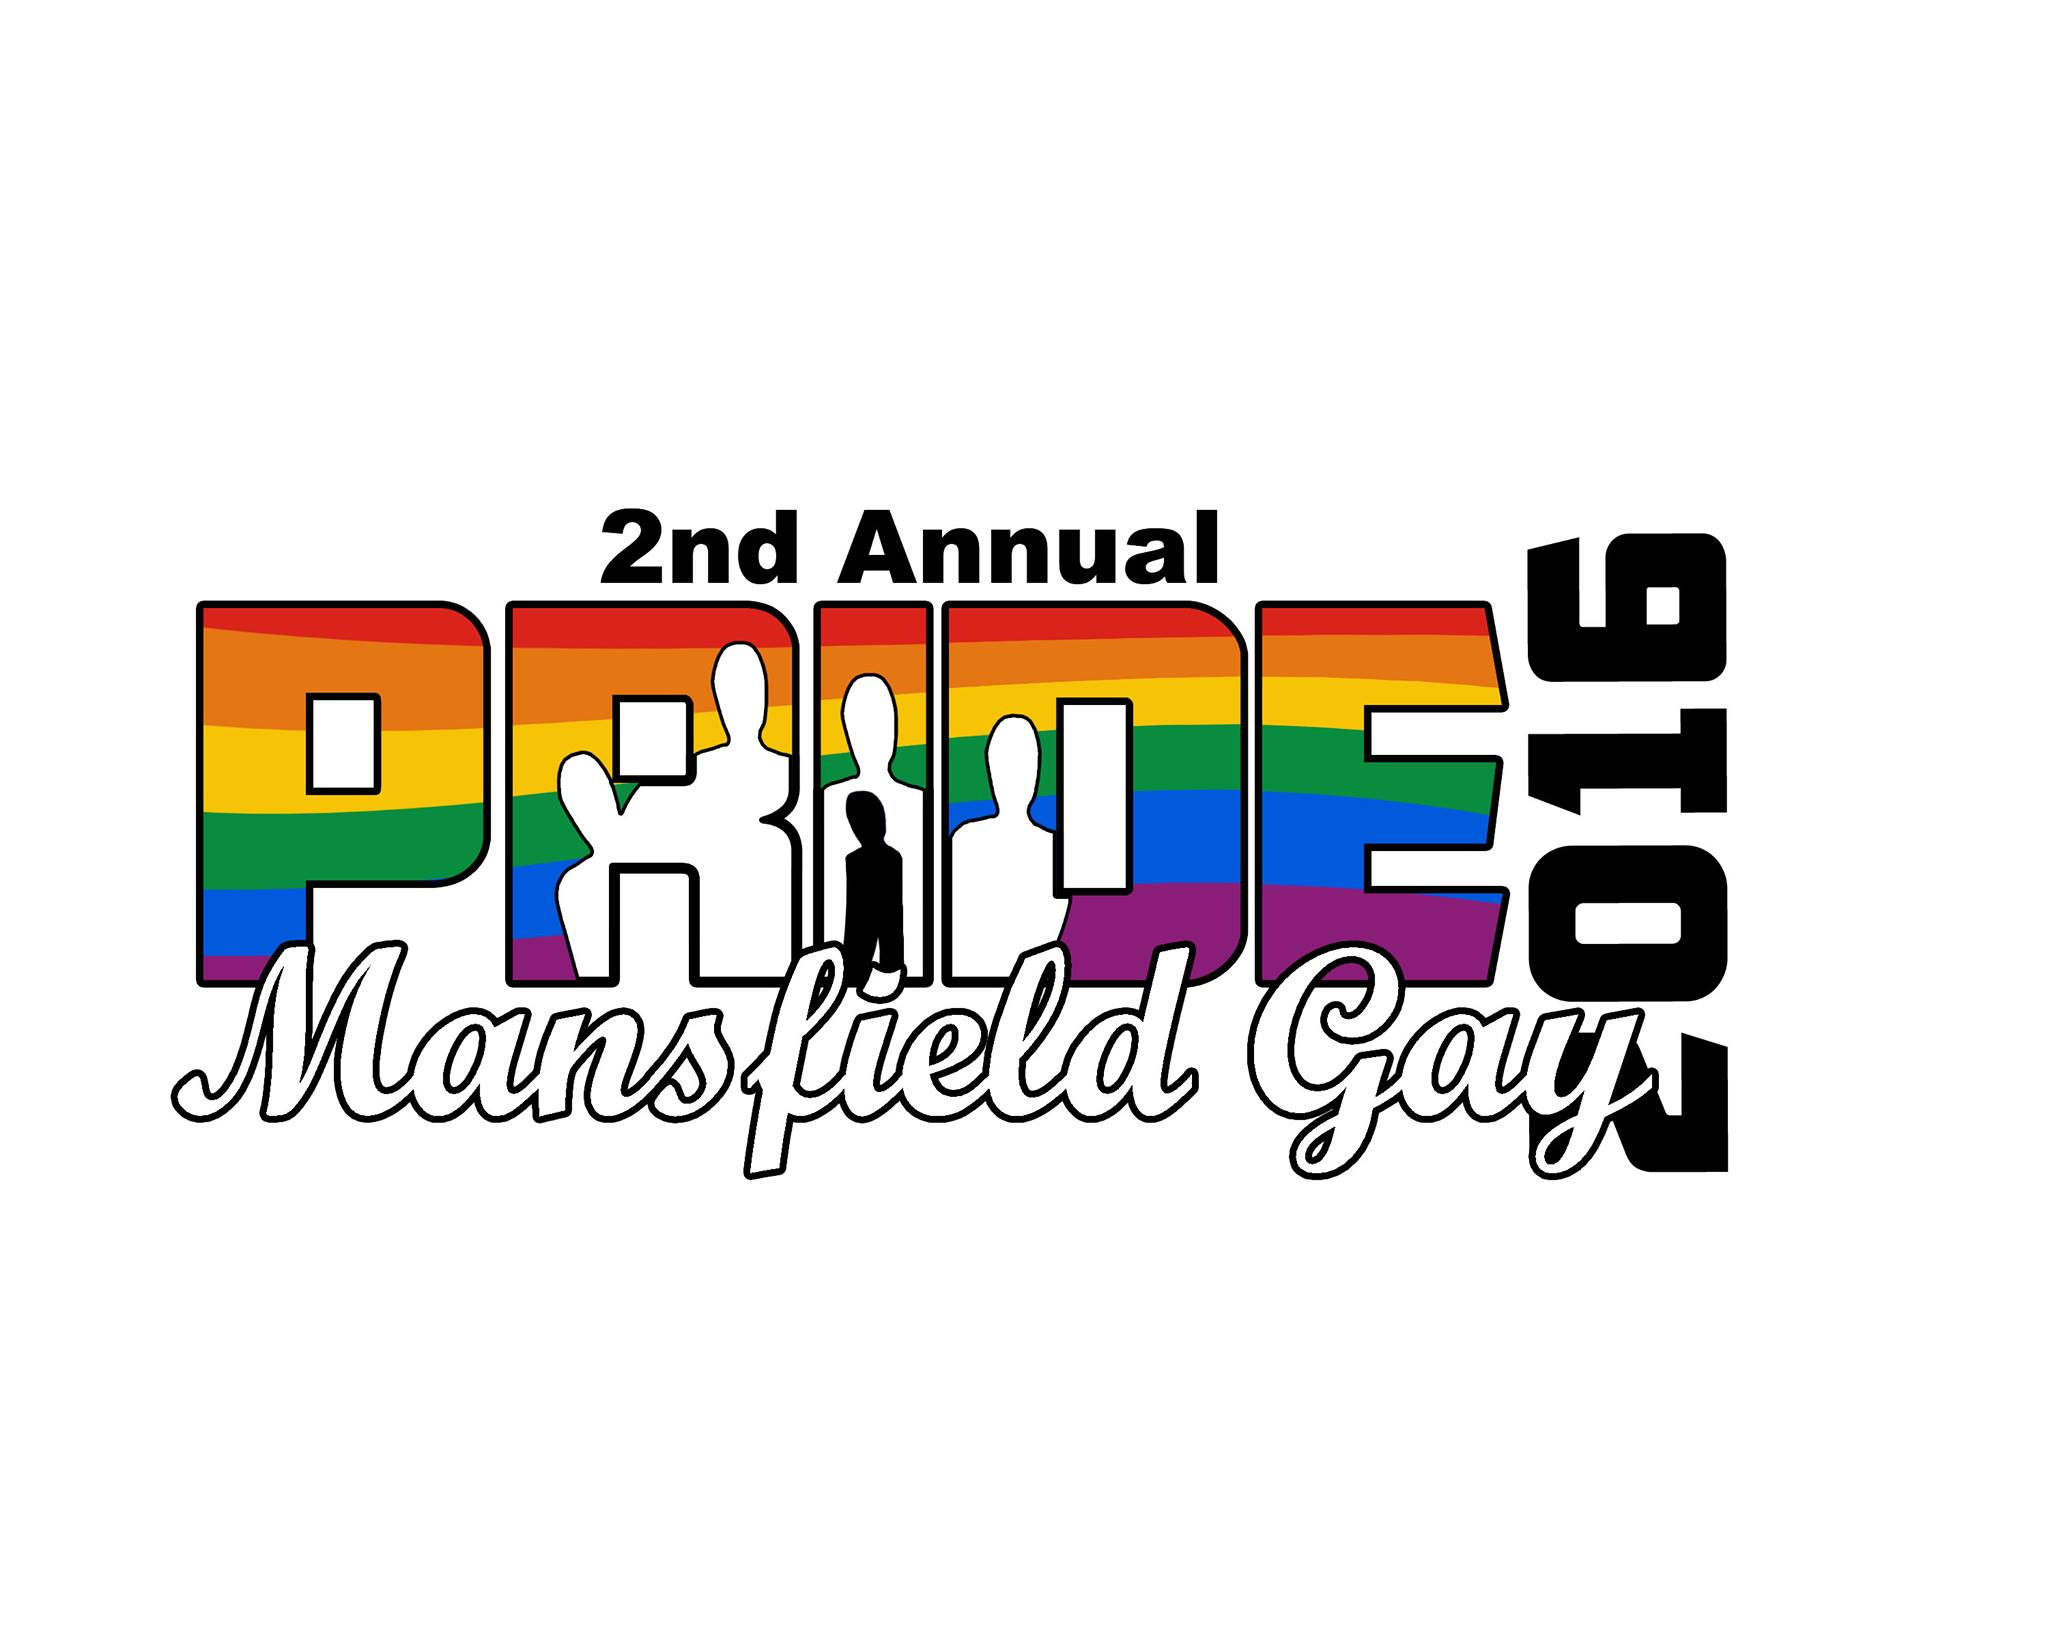 2nd Annual Gay pride Festival